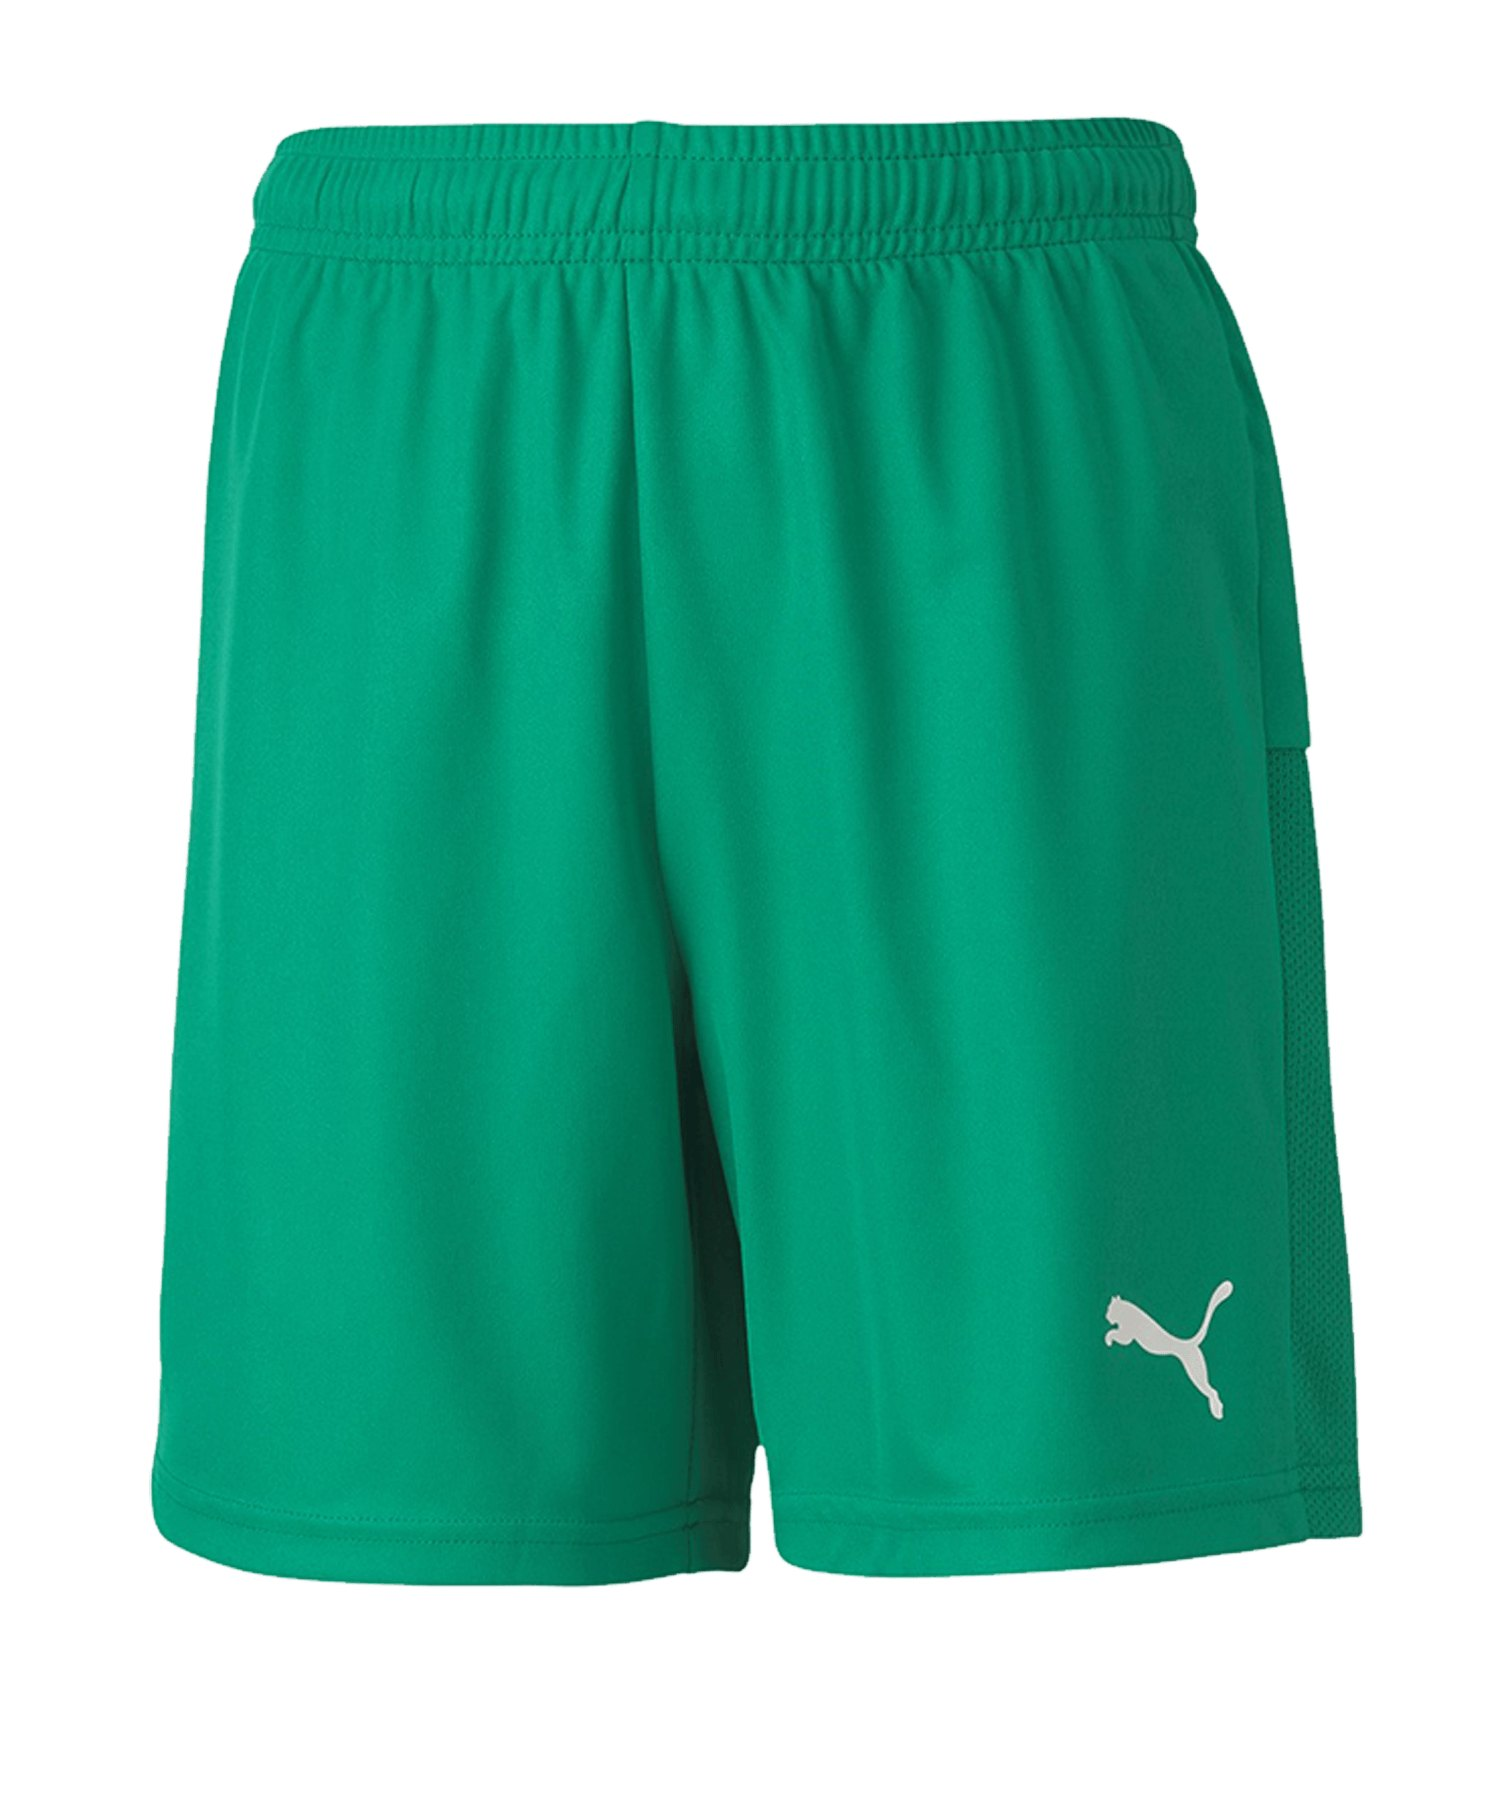 PUMA teamGOAL 23 Knit Short Kids Grün F05 - Gruen